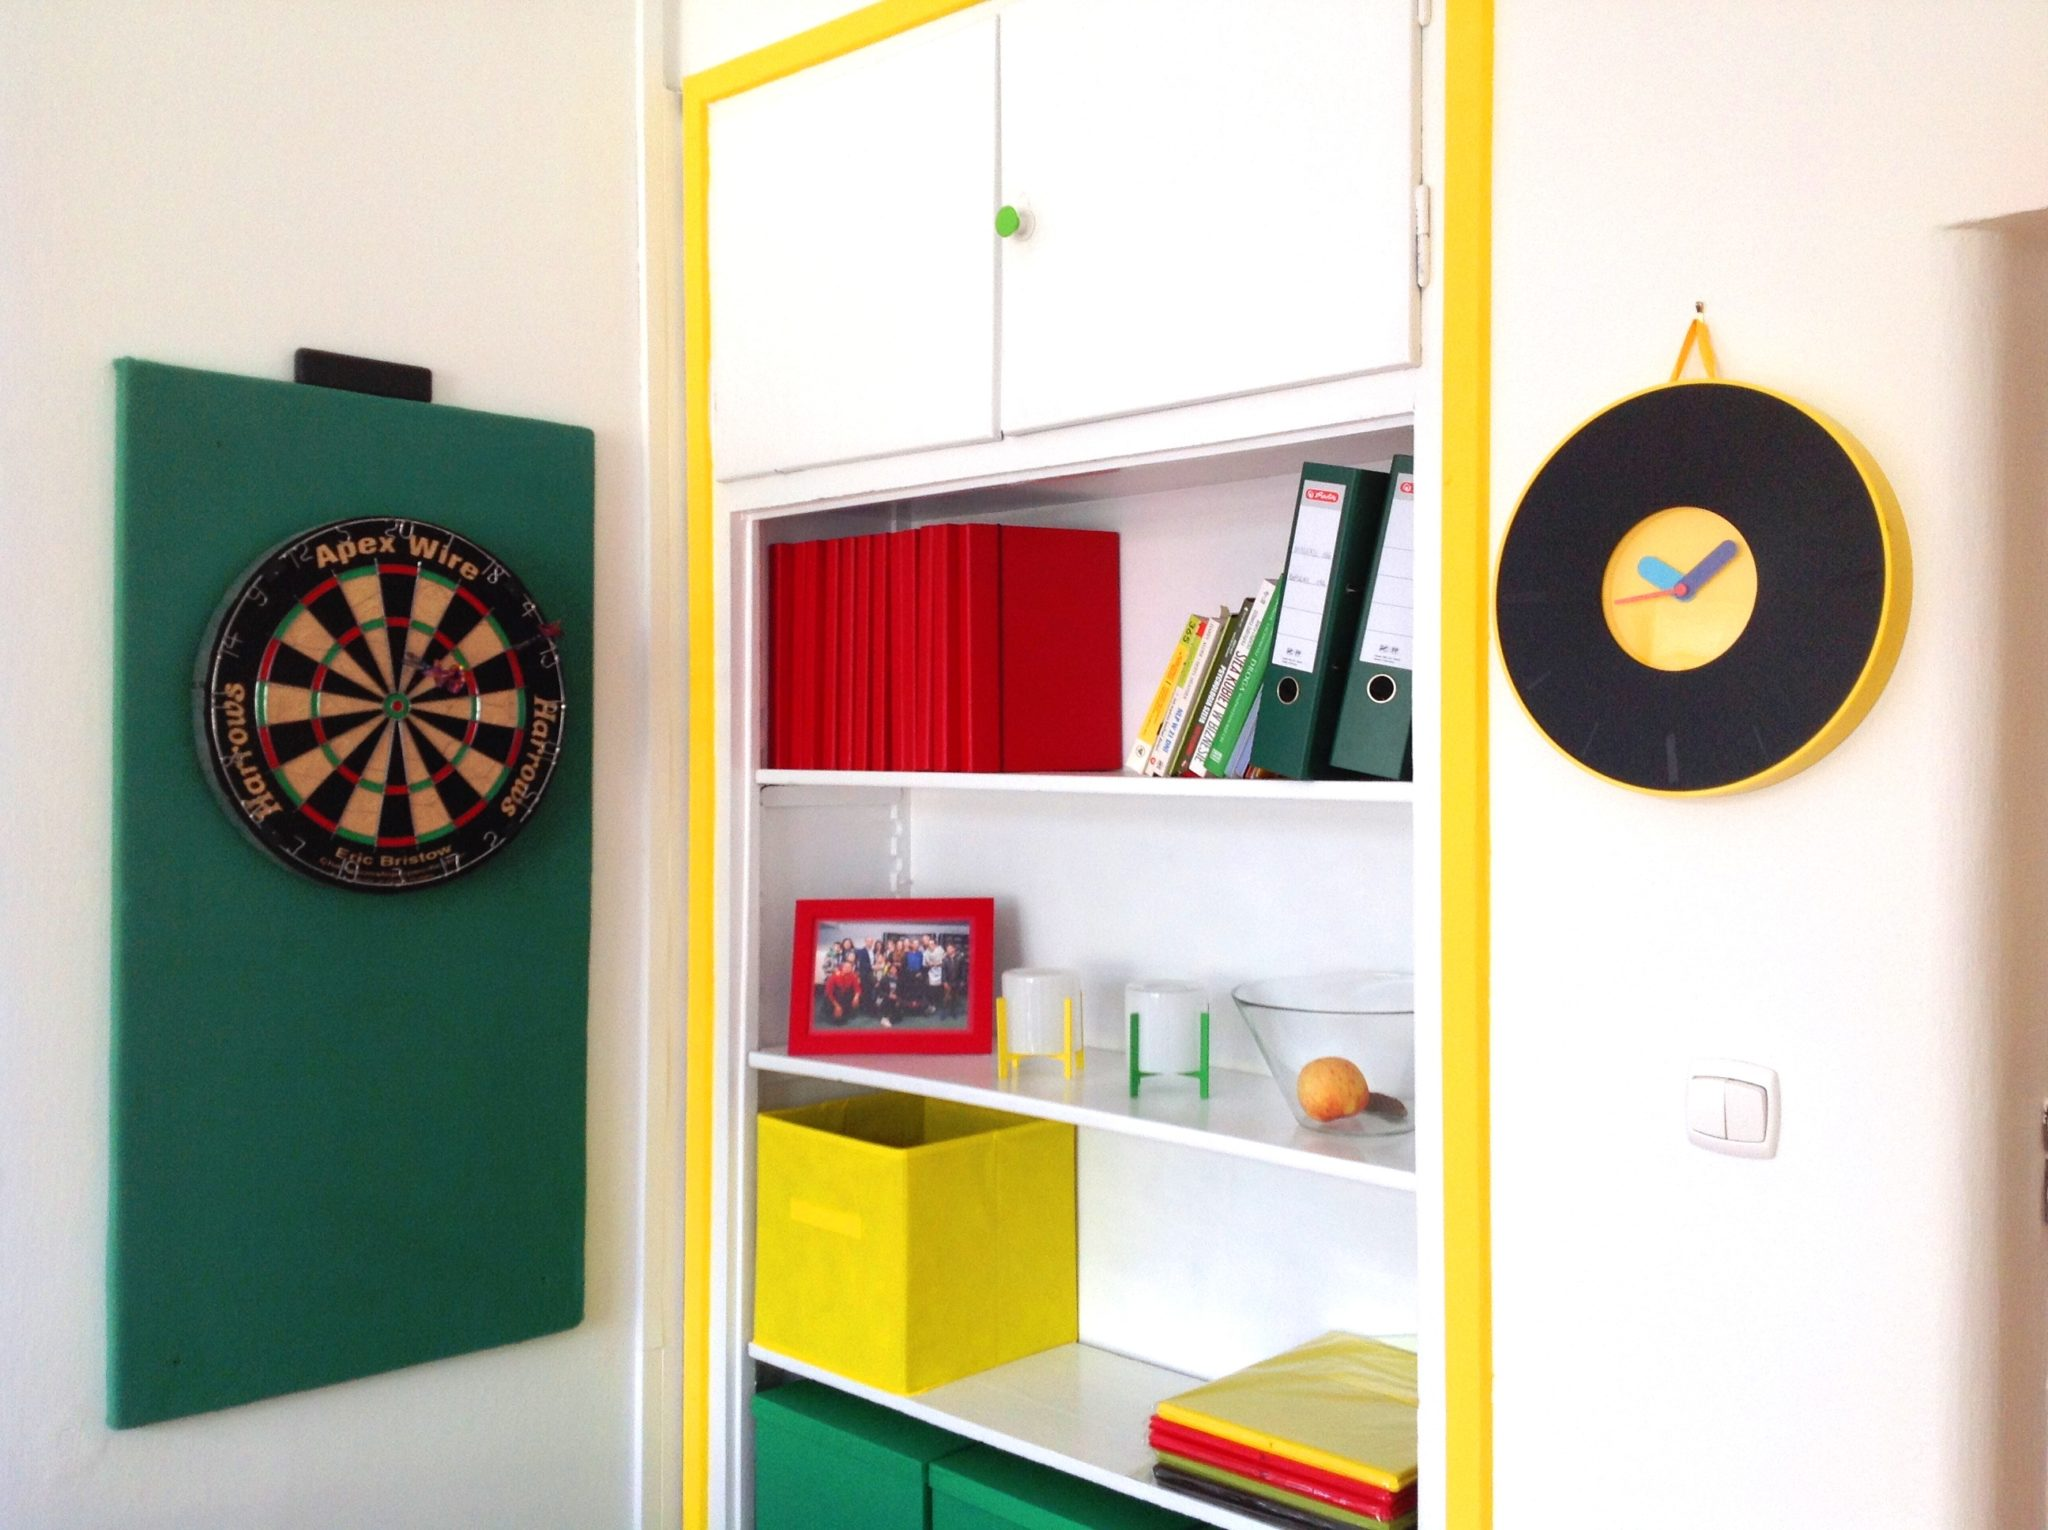 14 projekt wnetrza male kolorowe biuro interior design small colorful office google style forelementspl